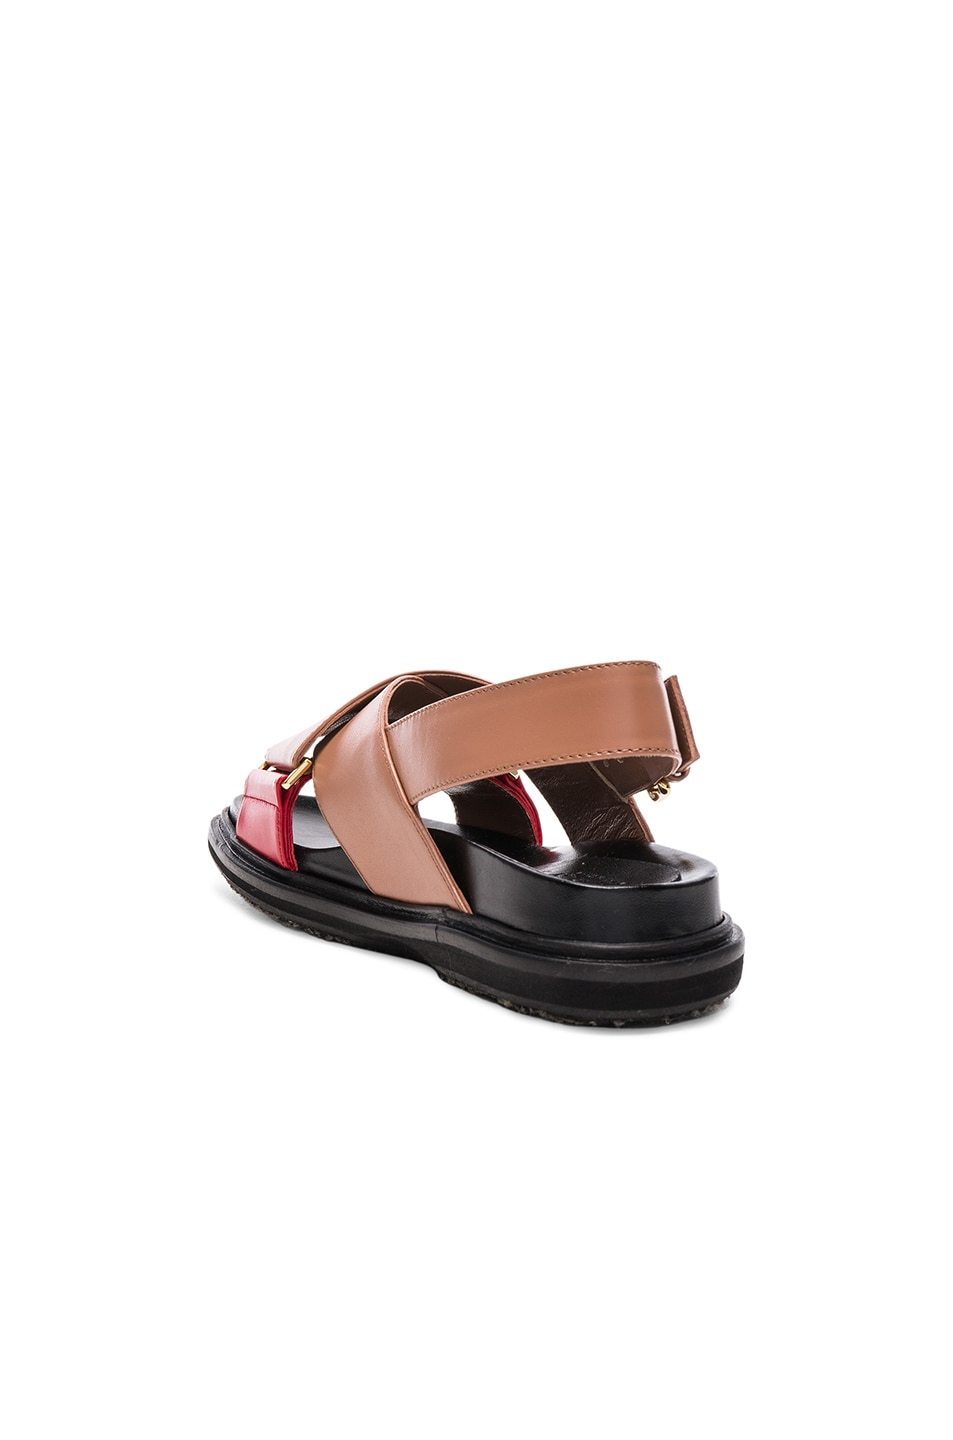 Image 3 of Marni Leather Fussbett Sandals in Cameo & Indian Red